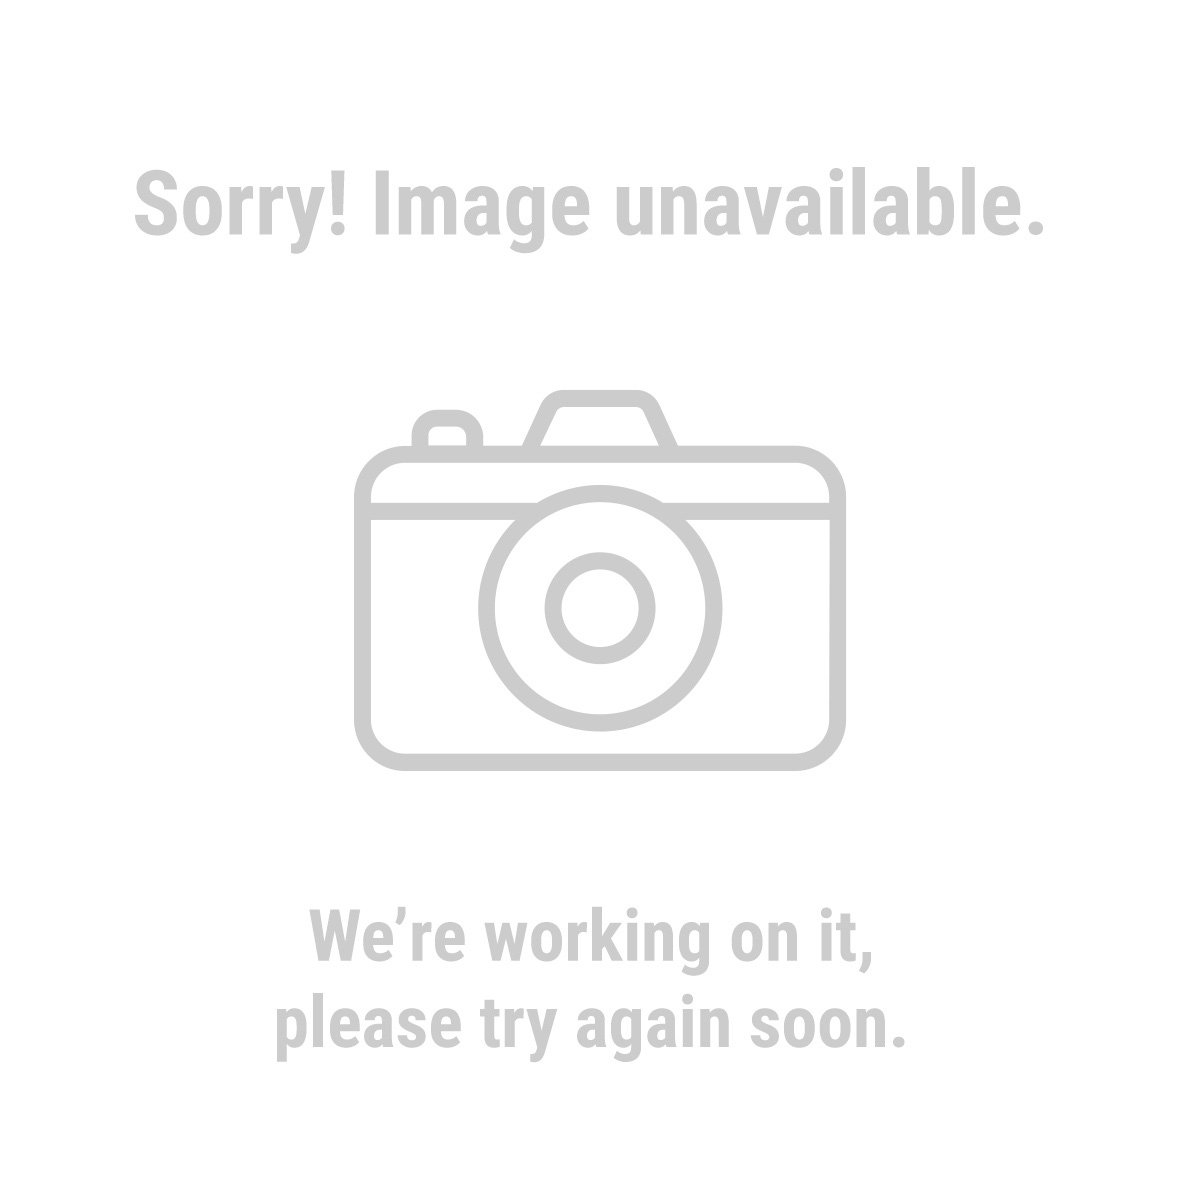 Central-Machinery 38471 Bench Top Bar and Rod Bender